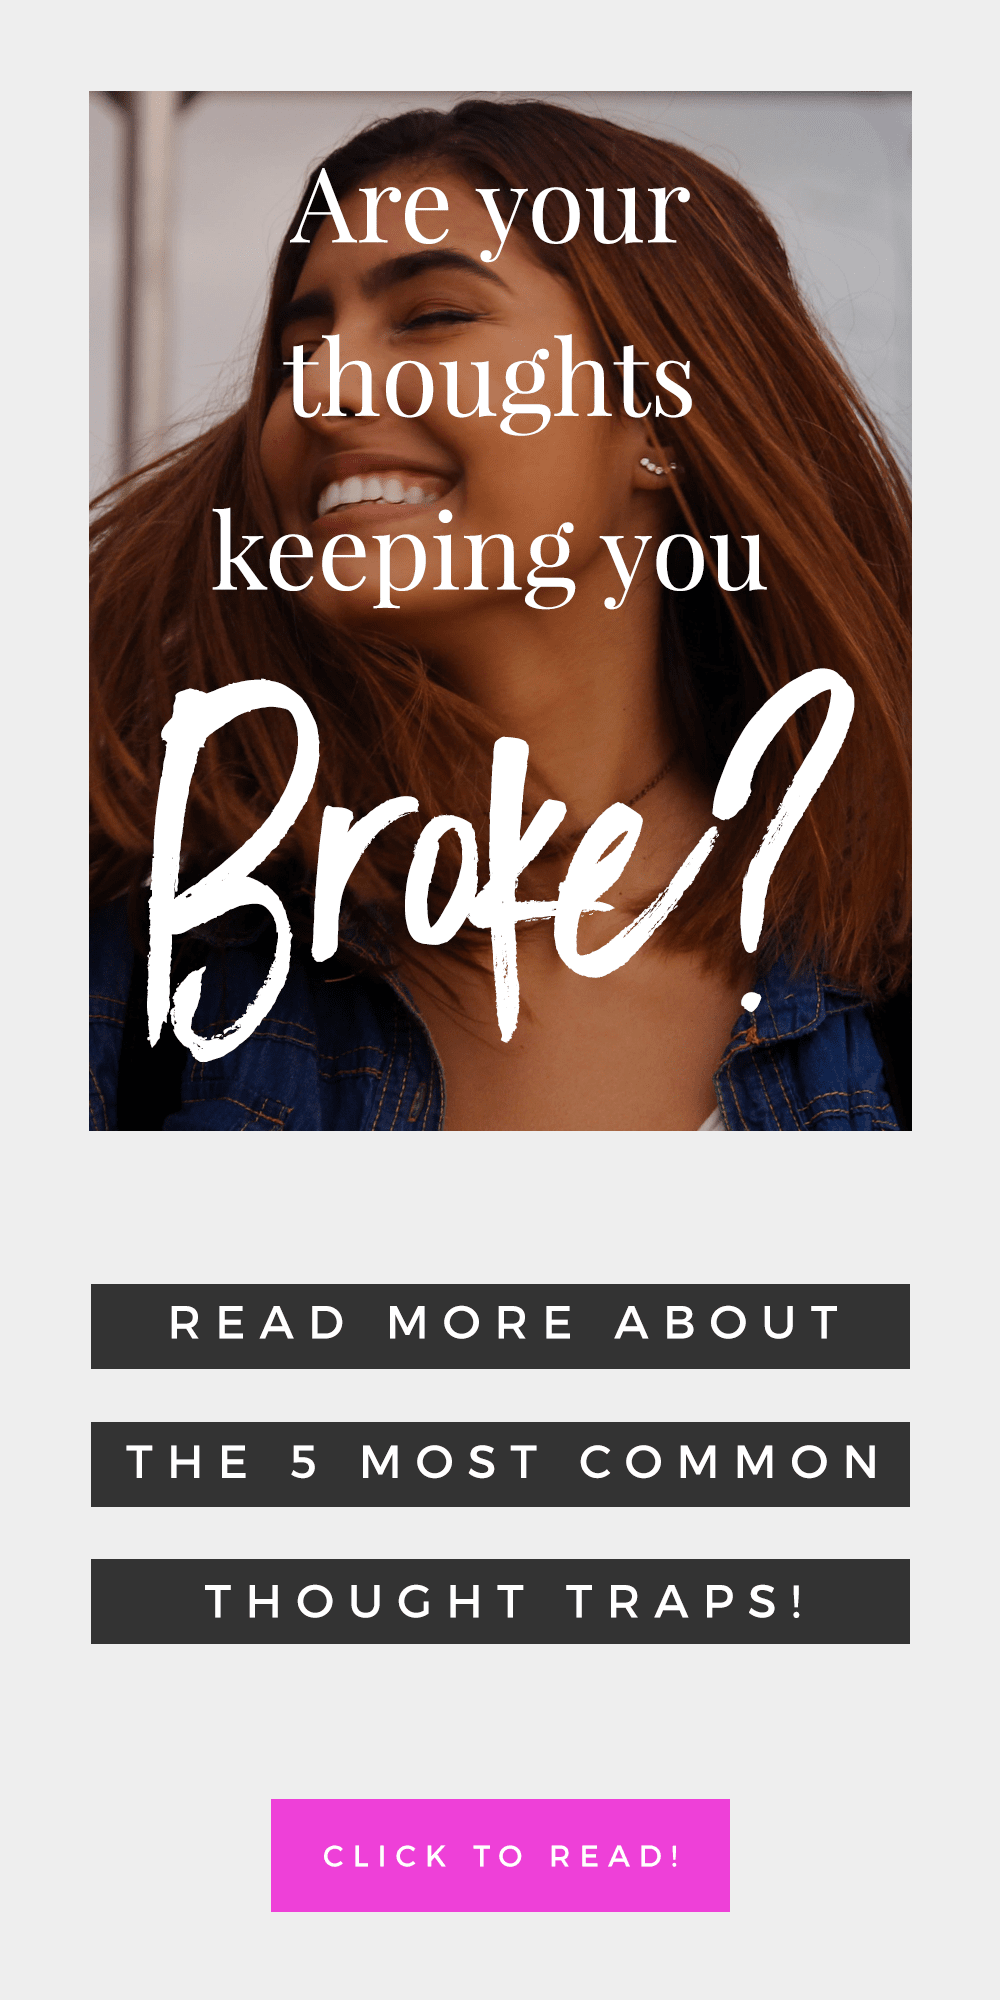 5 Thoughts That Are Keeping You Broke: Get Unblocked To Manifest Money